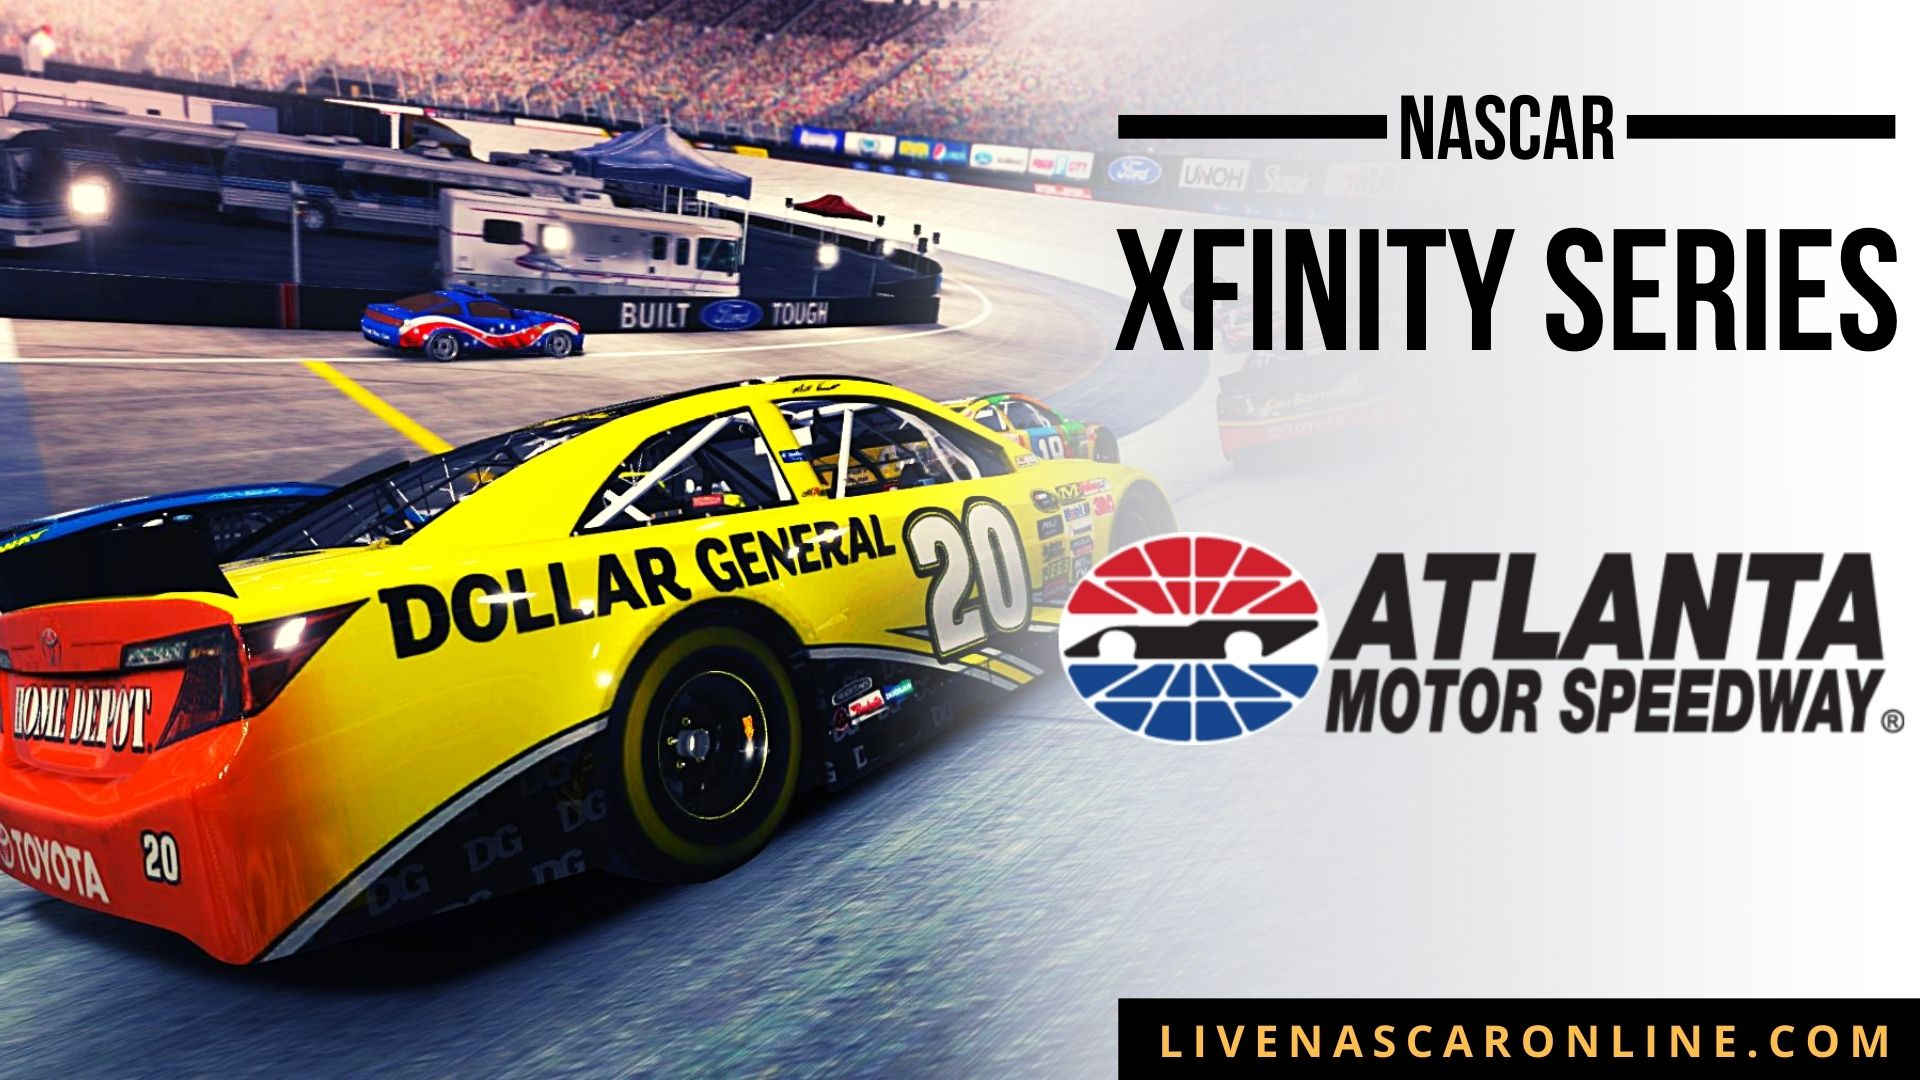 NASCAR Xfinity Race at Atlanta Live Stream 2021